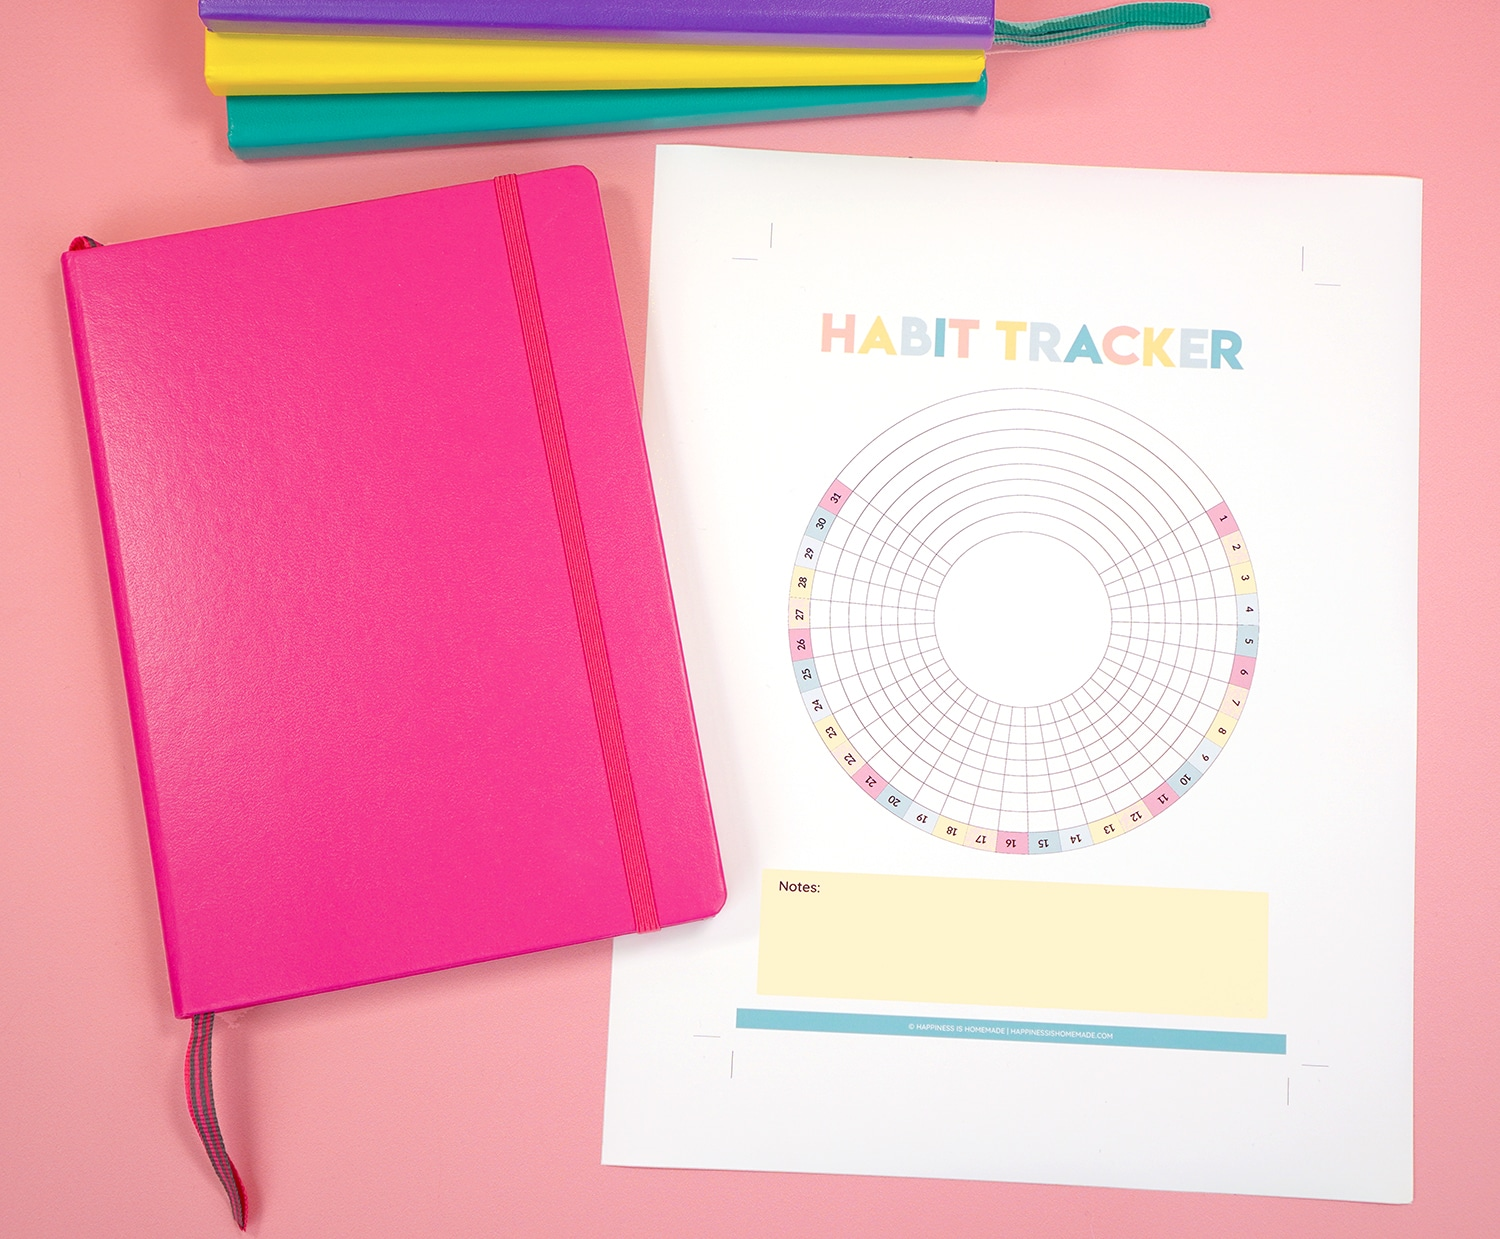 Printable Habit Tracker and bright pink bullet journal on light pink background